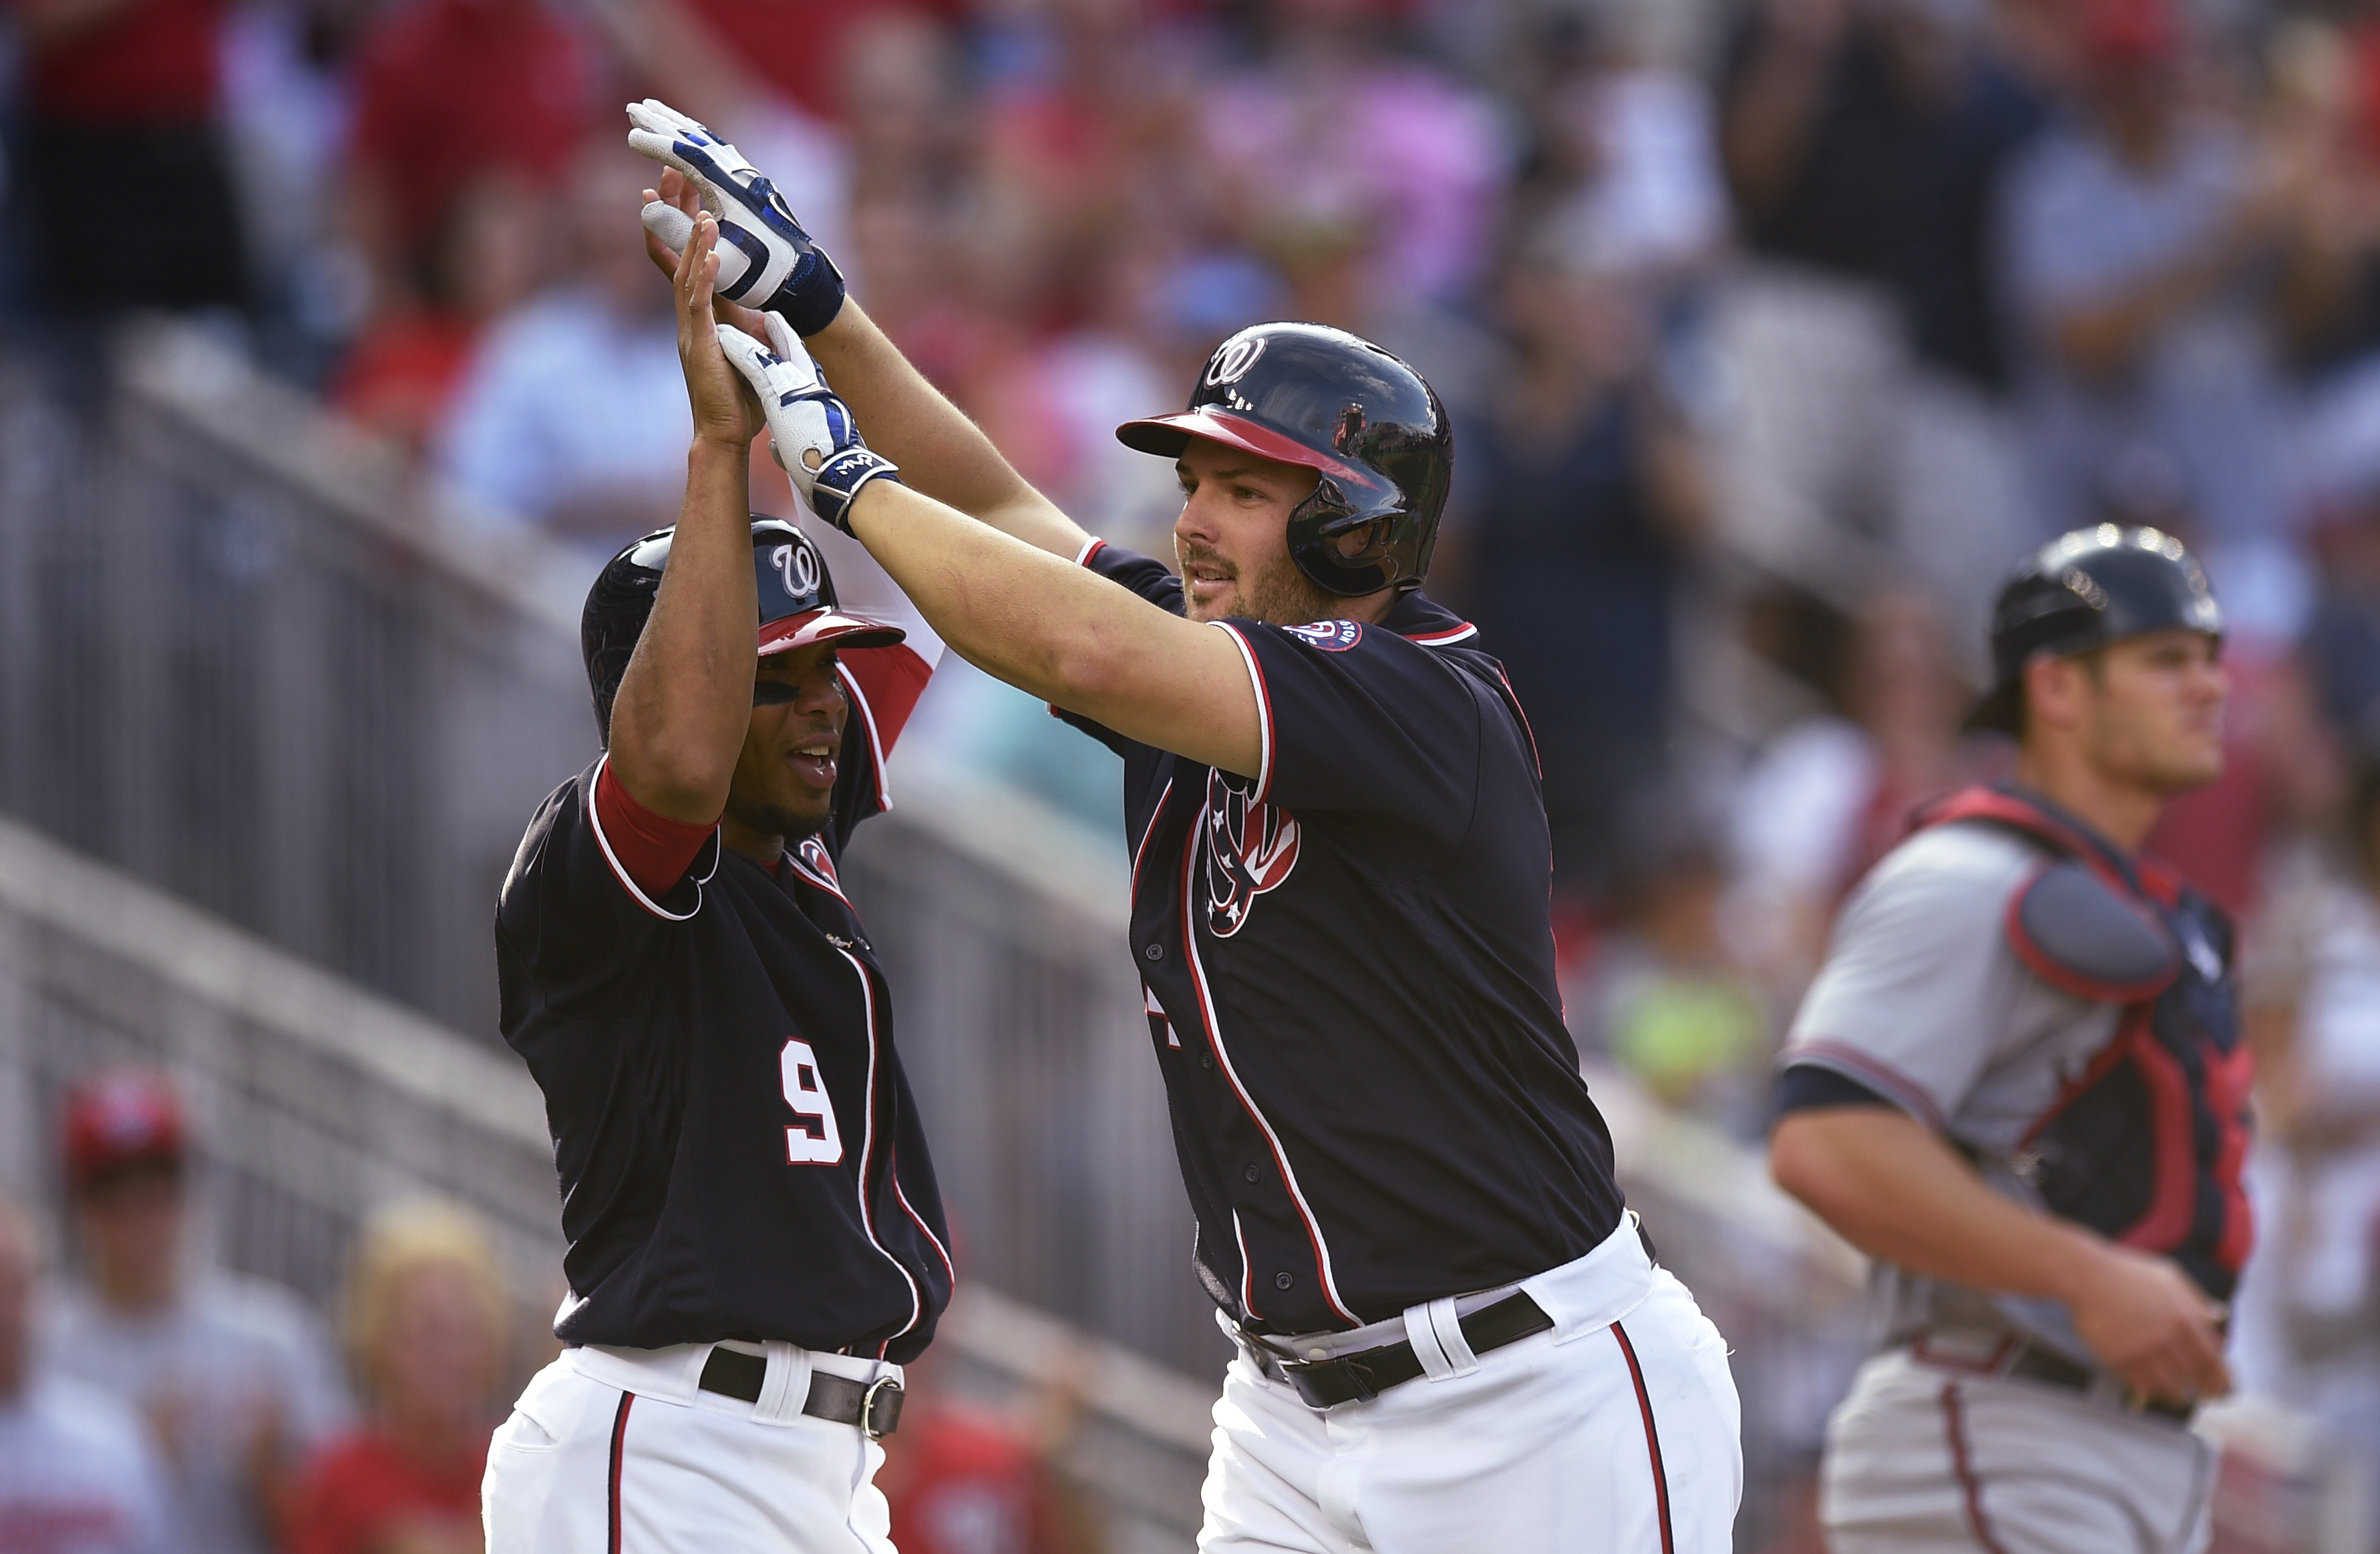 Washington Nationals' Chris Heisey, center celebrates his three-run home run with Ben Revere during the third inning of a baseball game, as the Atlanta Braves catcher Anthony Recker waits, Monday, Sept. 5, 2016, in Washington. (AP Photo/Nick Wass)